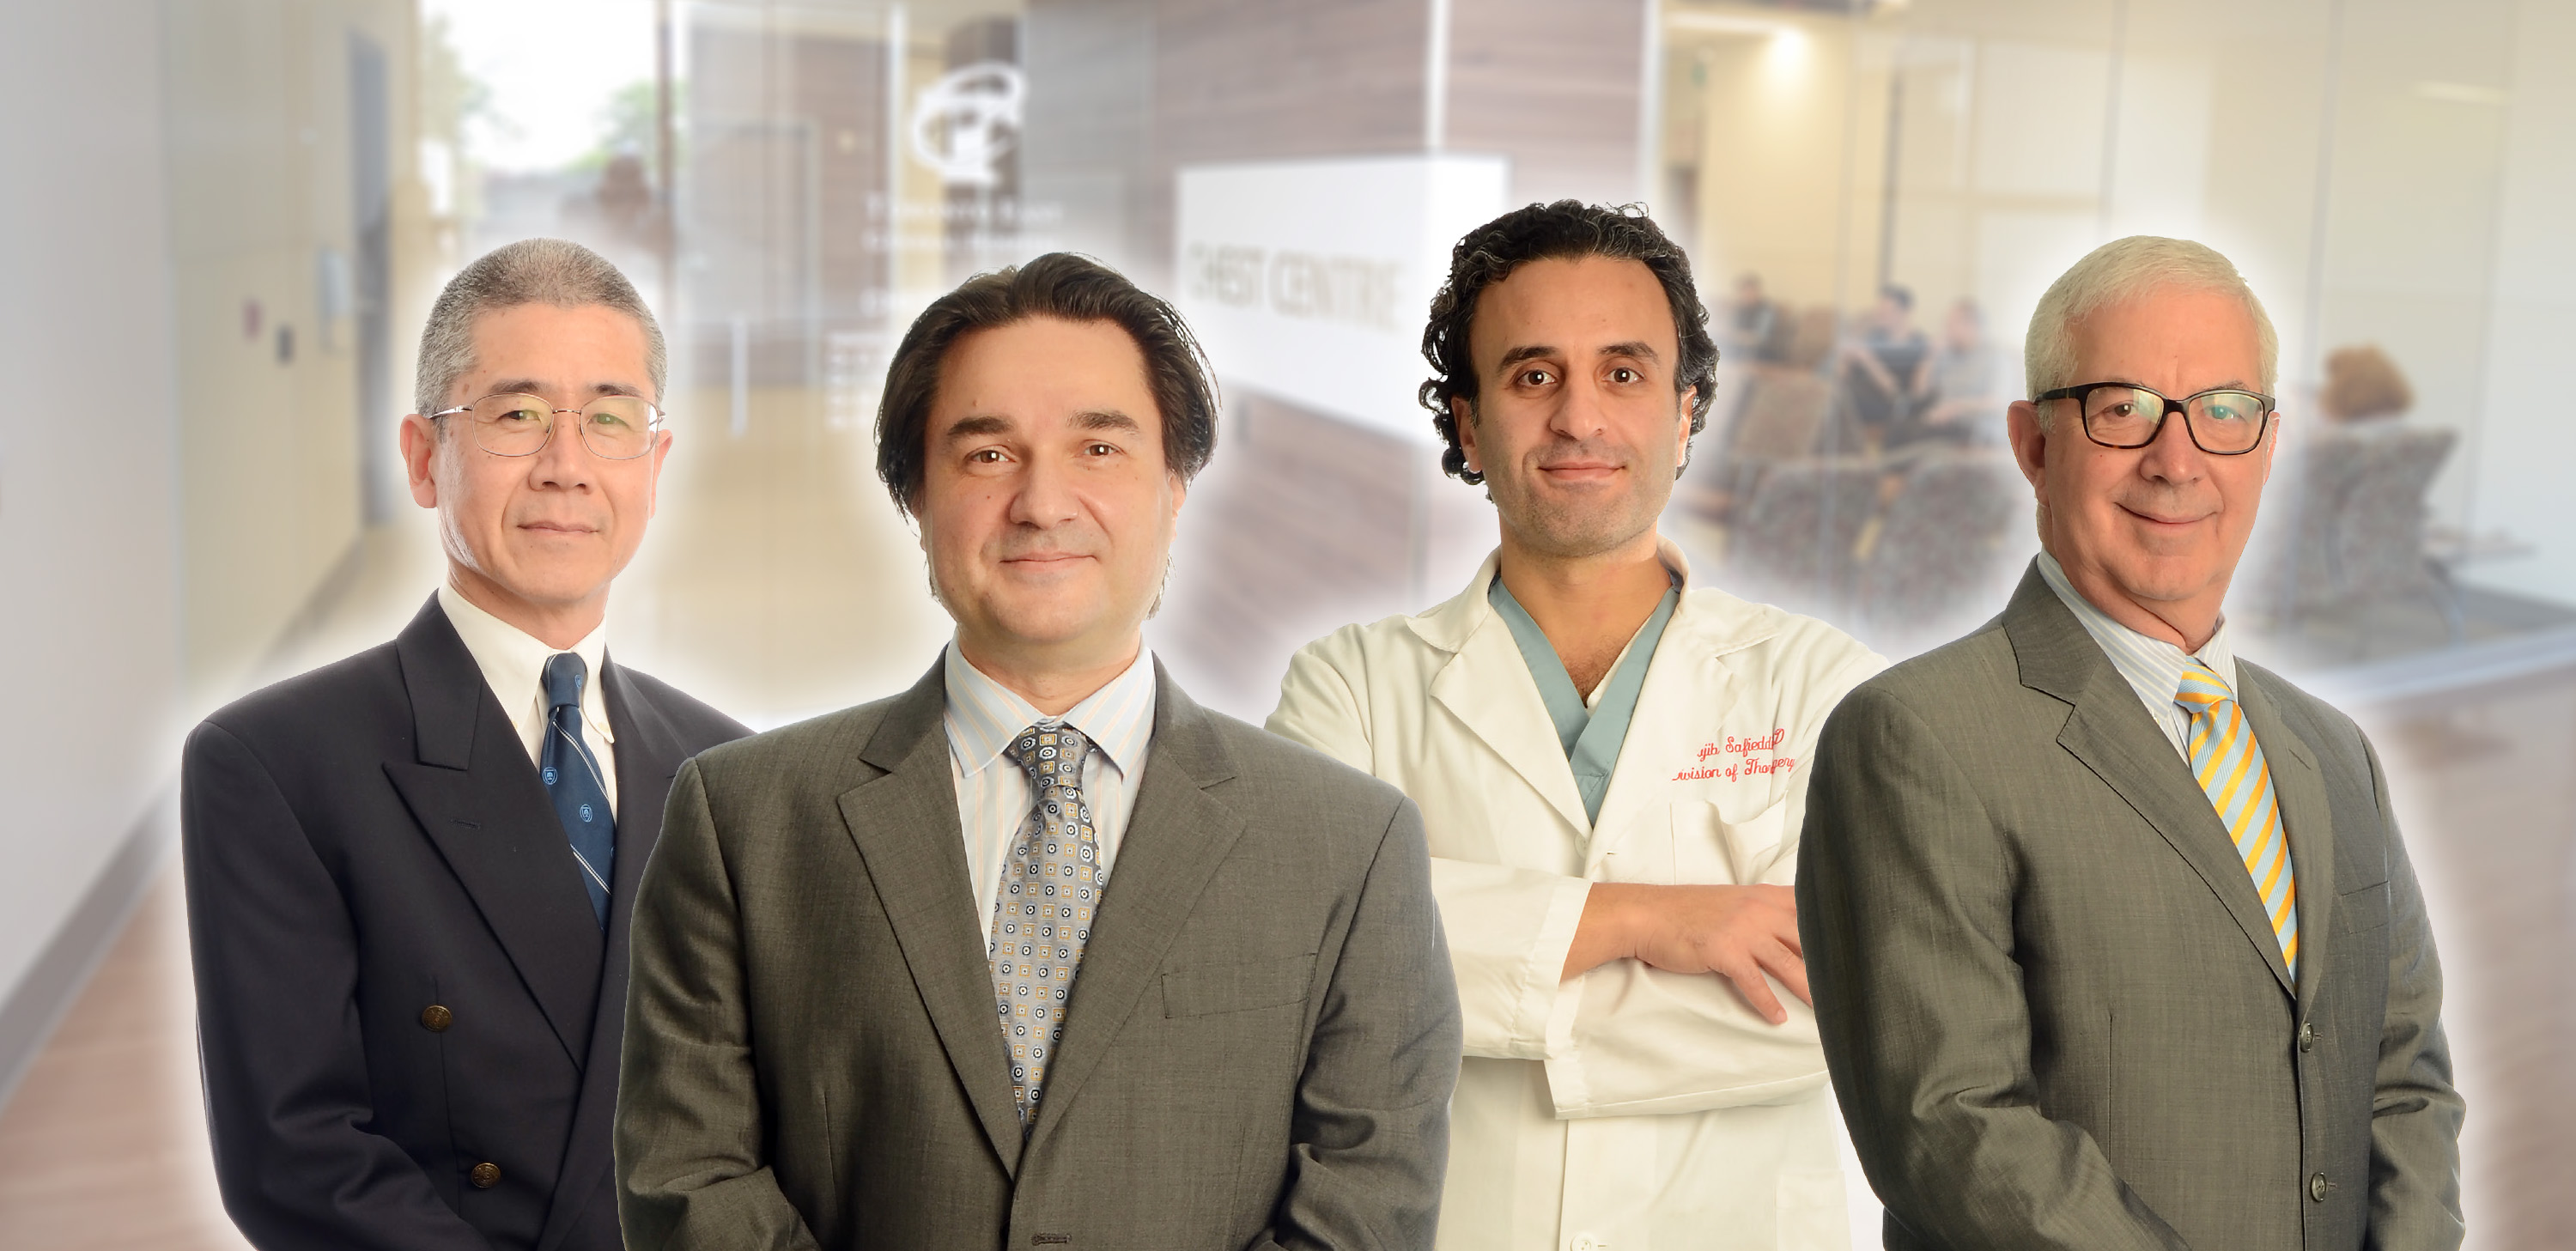 Doctors from Thoracic Surgeons of East Toronto